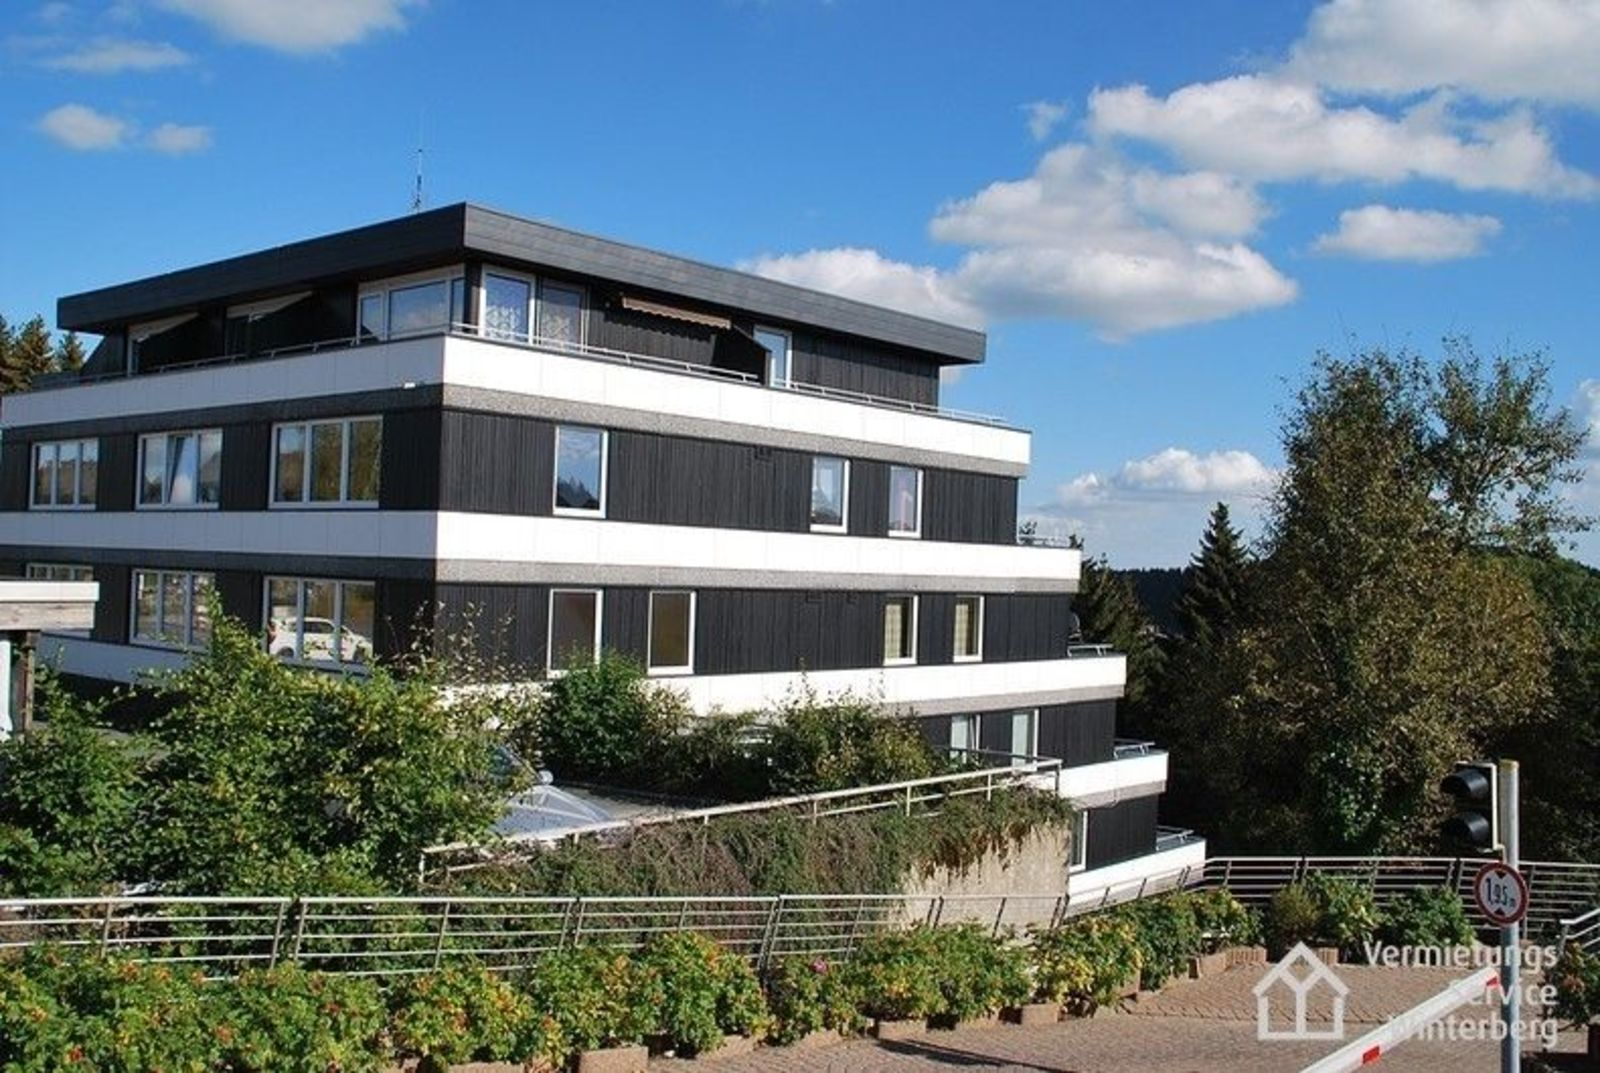 Apartment - Am Waltenberg 70-KO | Winterberg